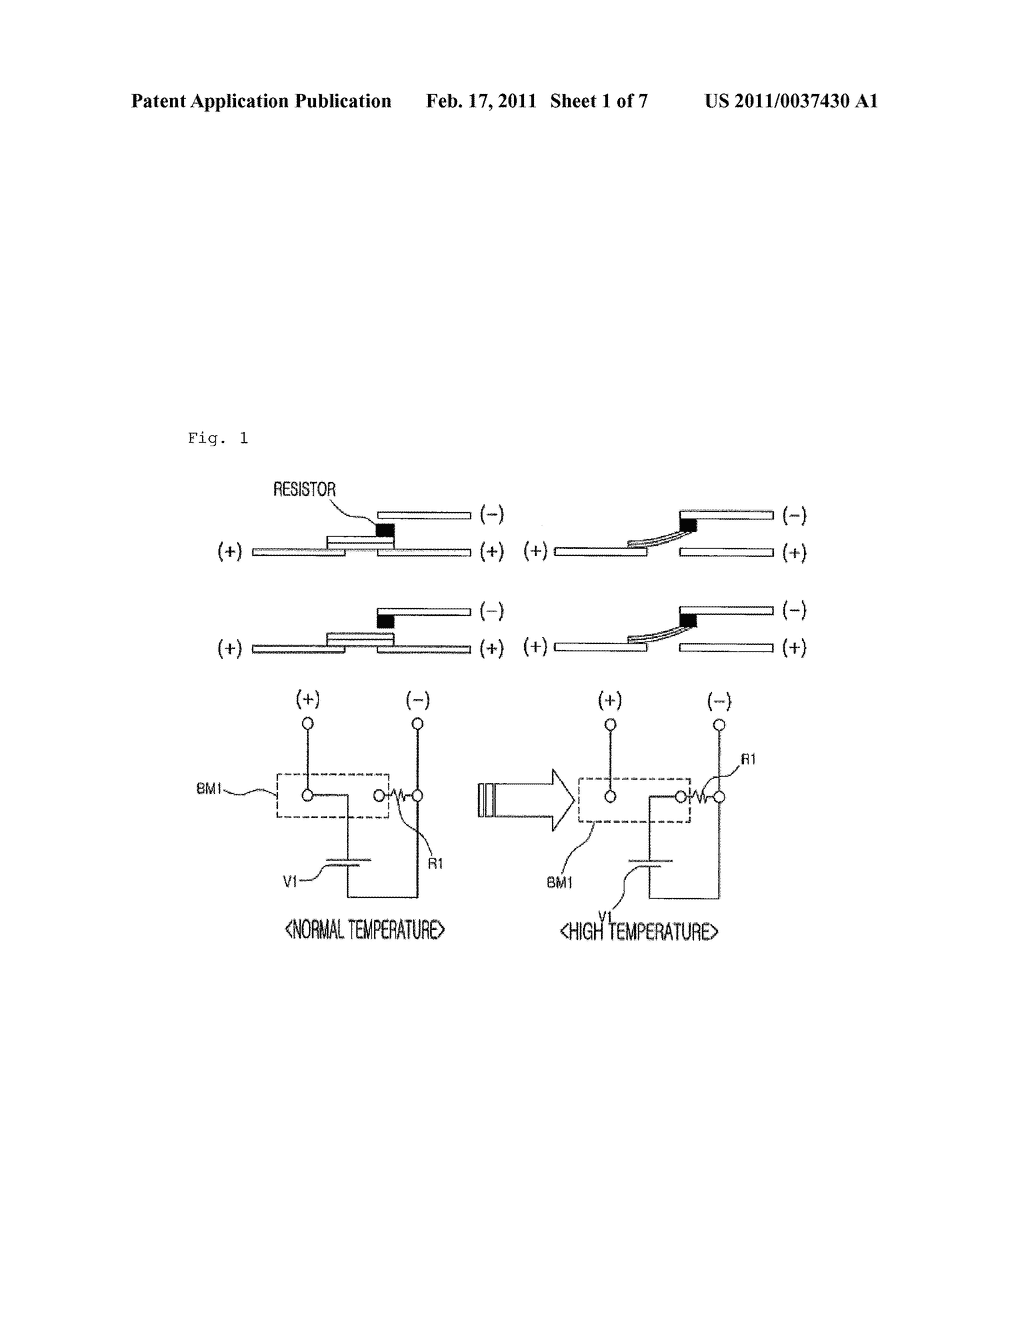 Safety Switch for Secondary Battery for Electric Vehicle and Charging Discharging System for Secondary Battery for Electric Vehicle Using the Same - diagram, schematic, and image 02